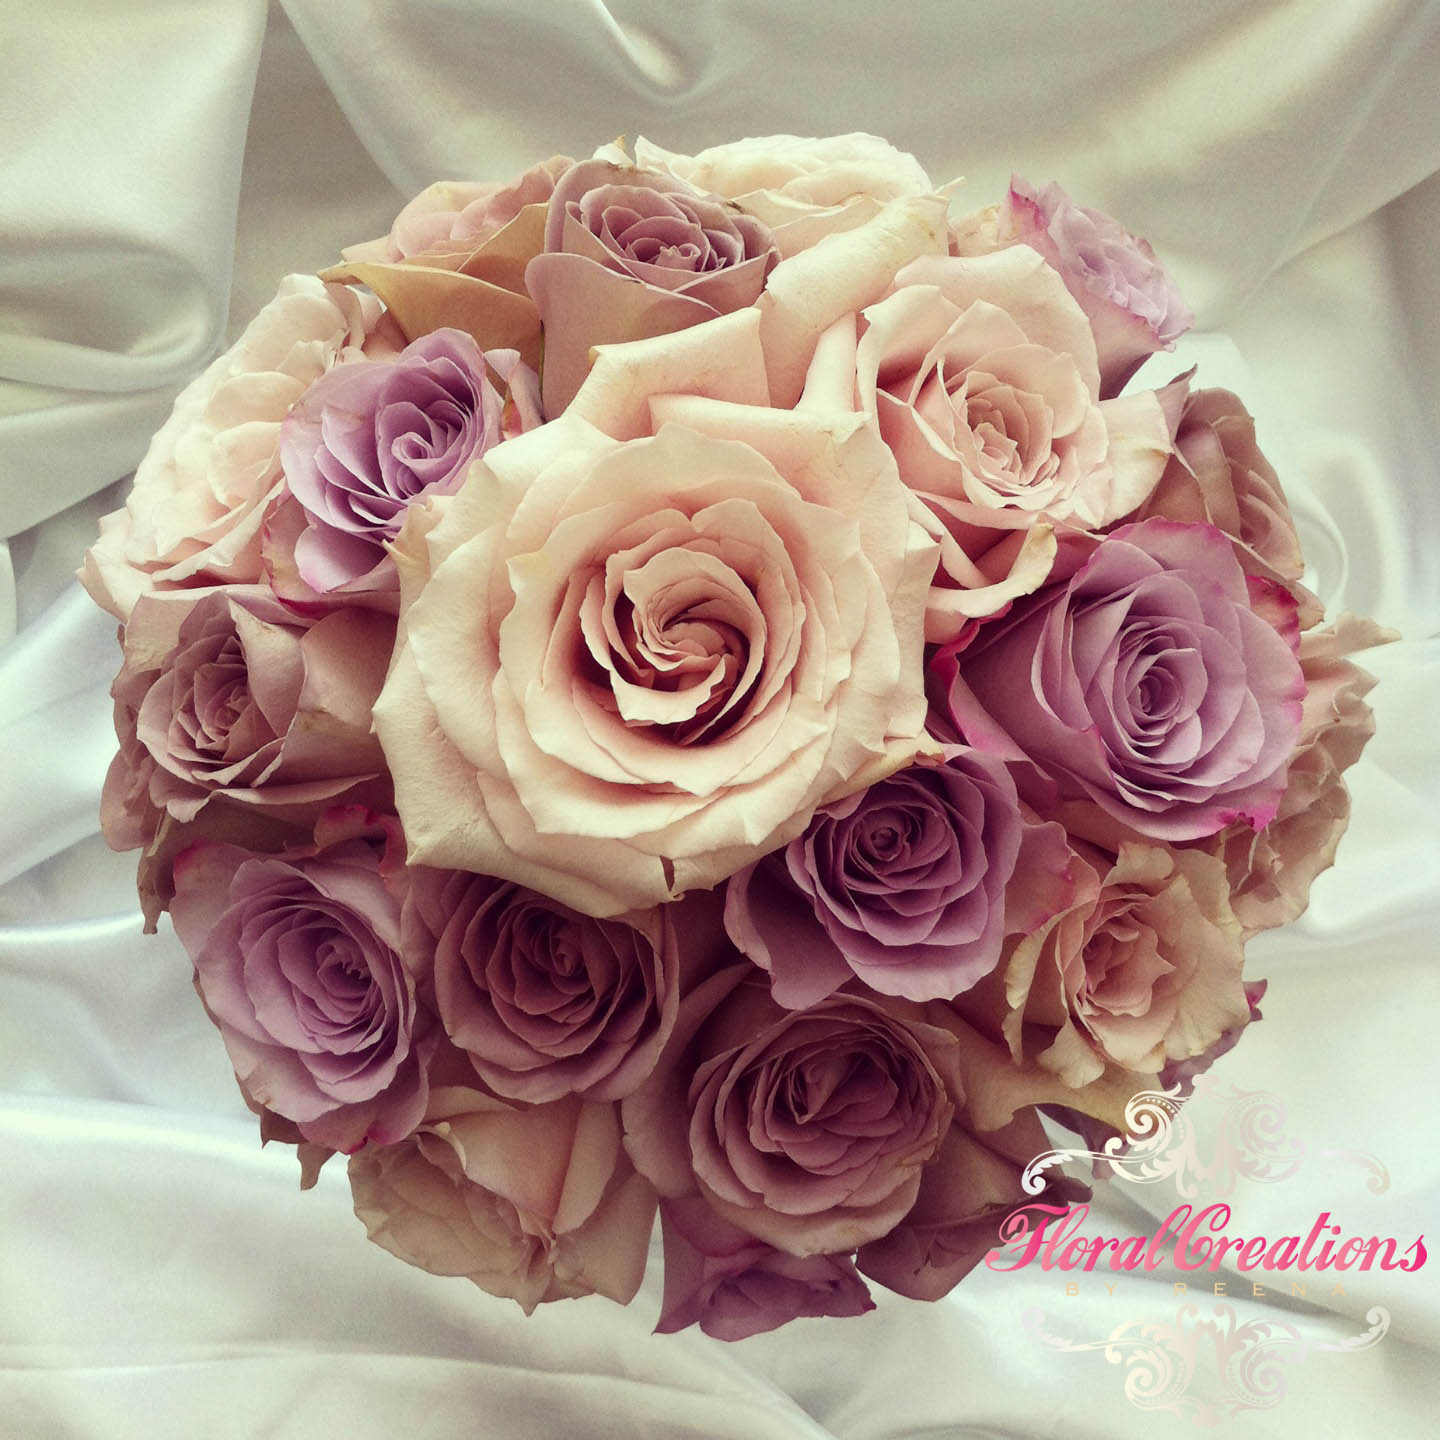 Vintage Rose Cascade Bouquet  Floral Creations by Reena